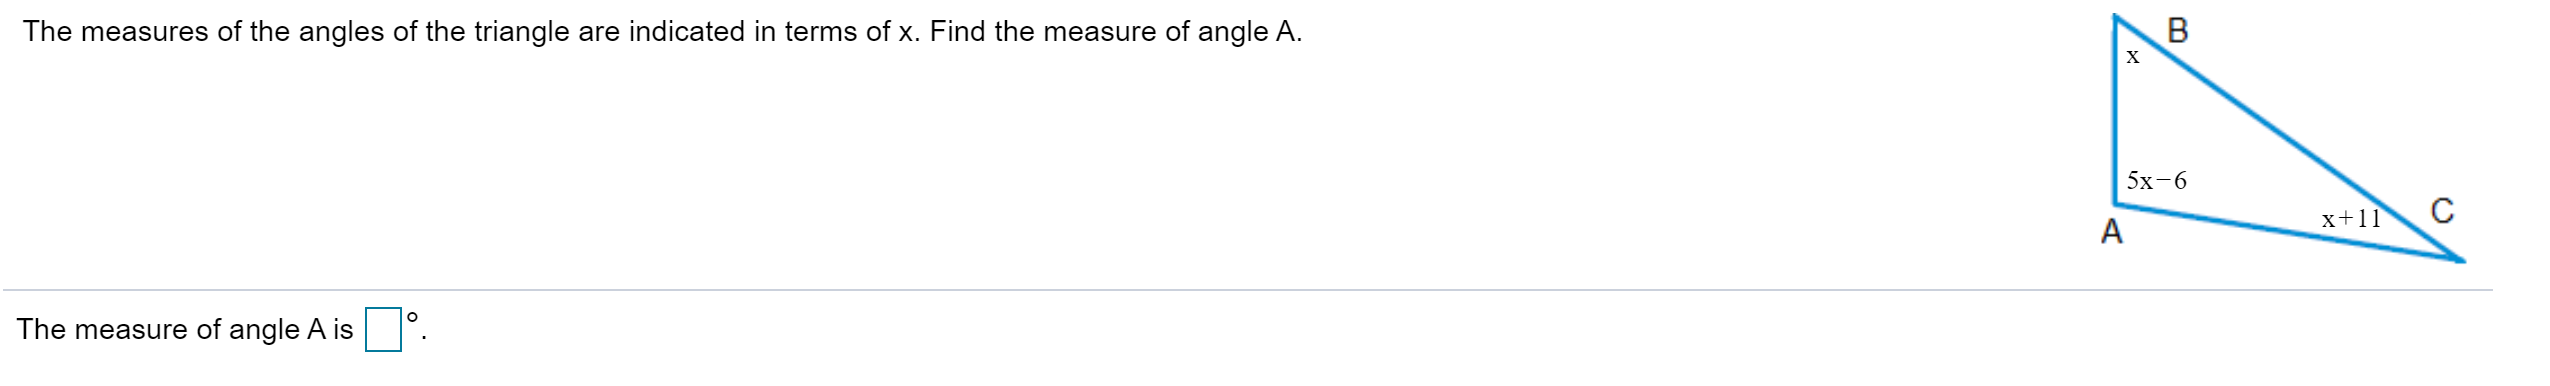 The measures of the angles of the triangle are indicated in terms of x. Find the measure of angle A. х 5х-6 x+11 The measure of angle A is